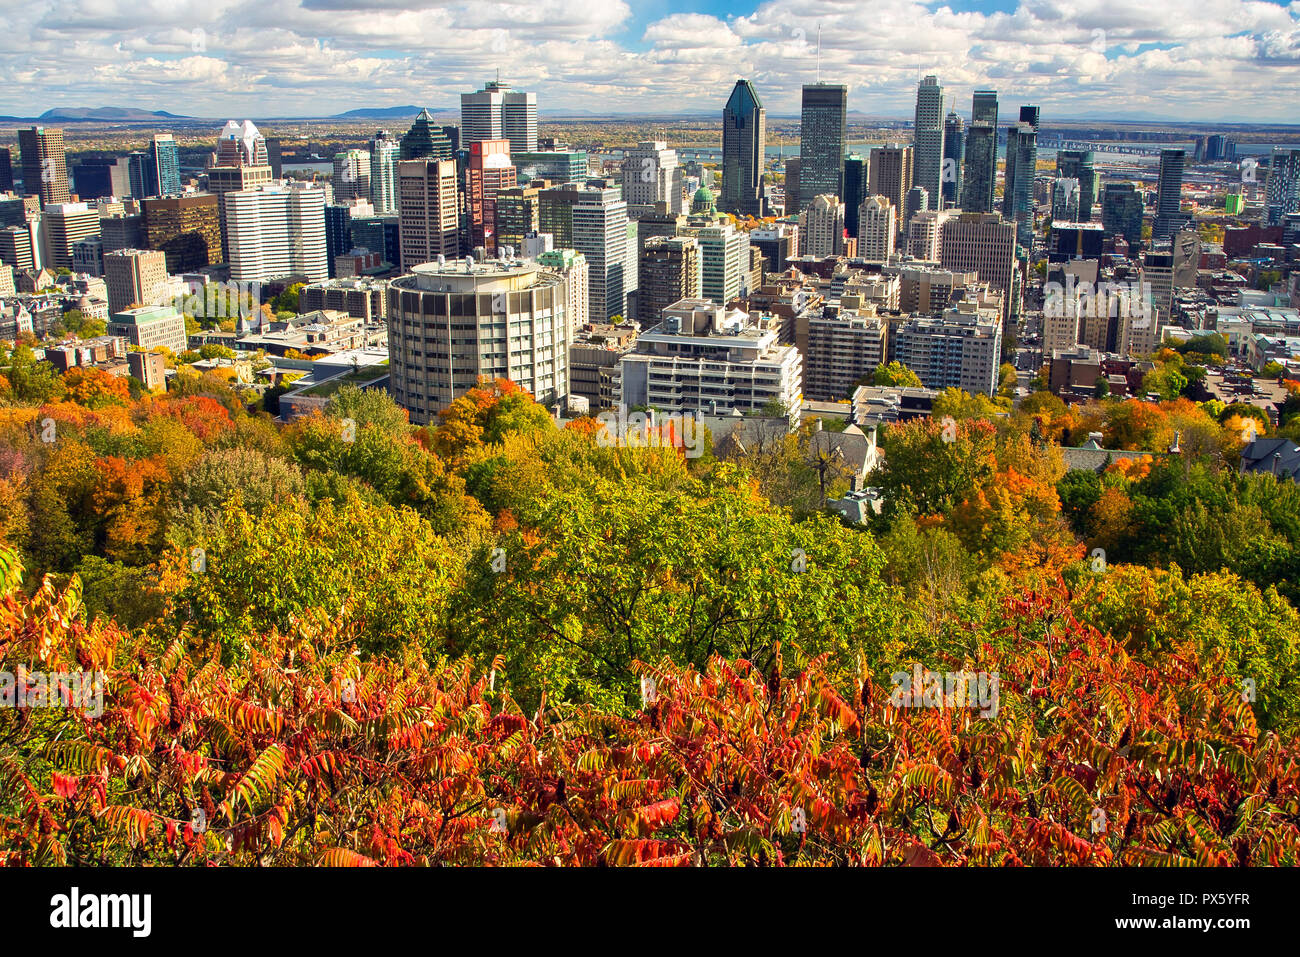 Montreal,Canada,18 October,2018.View of Montreal's skyline during autumn. Credit:Mario Beauregard/Alamy Live News - Stock Image